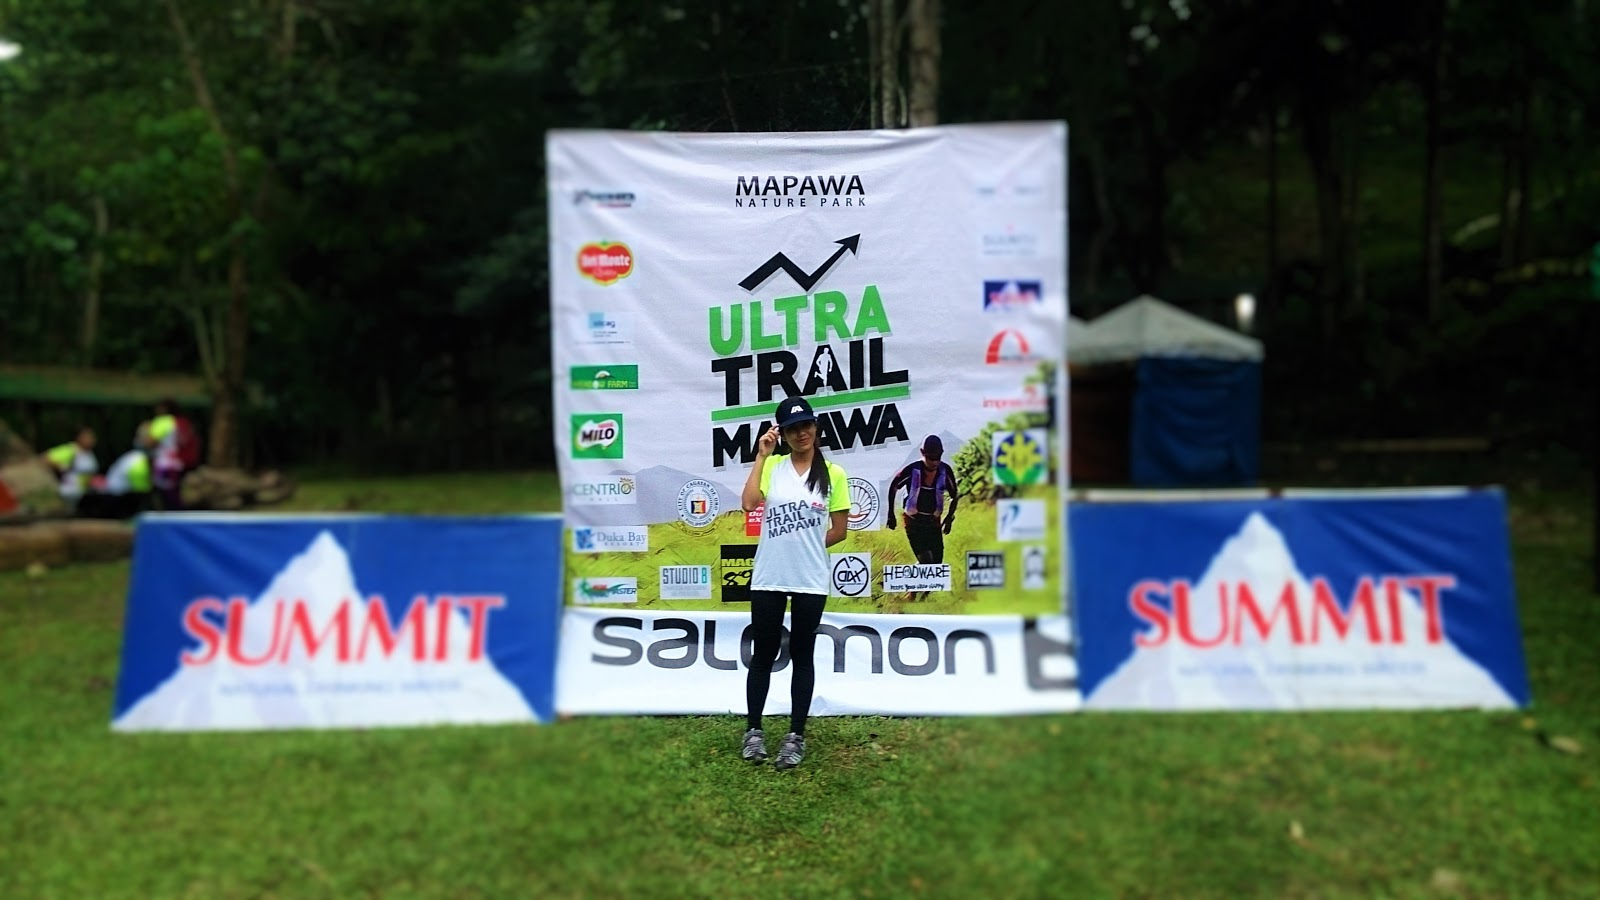 Mapawa Trail Run